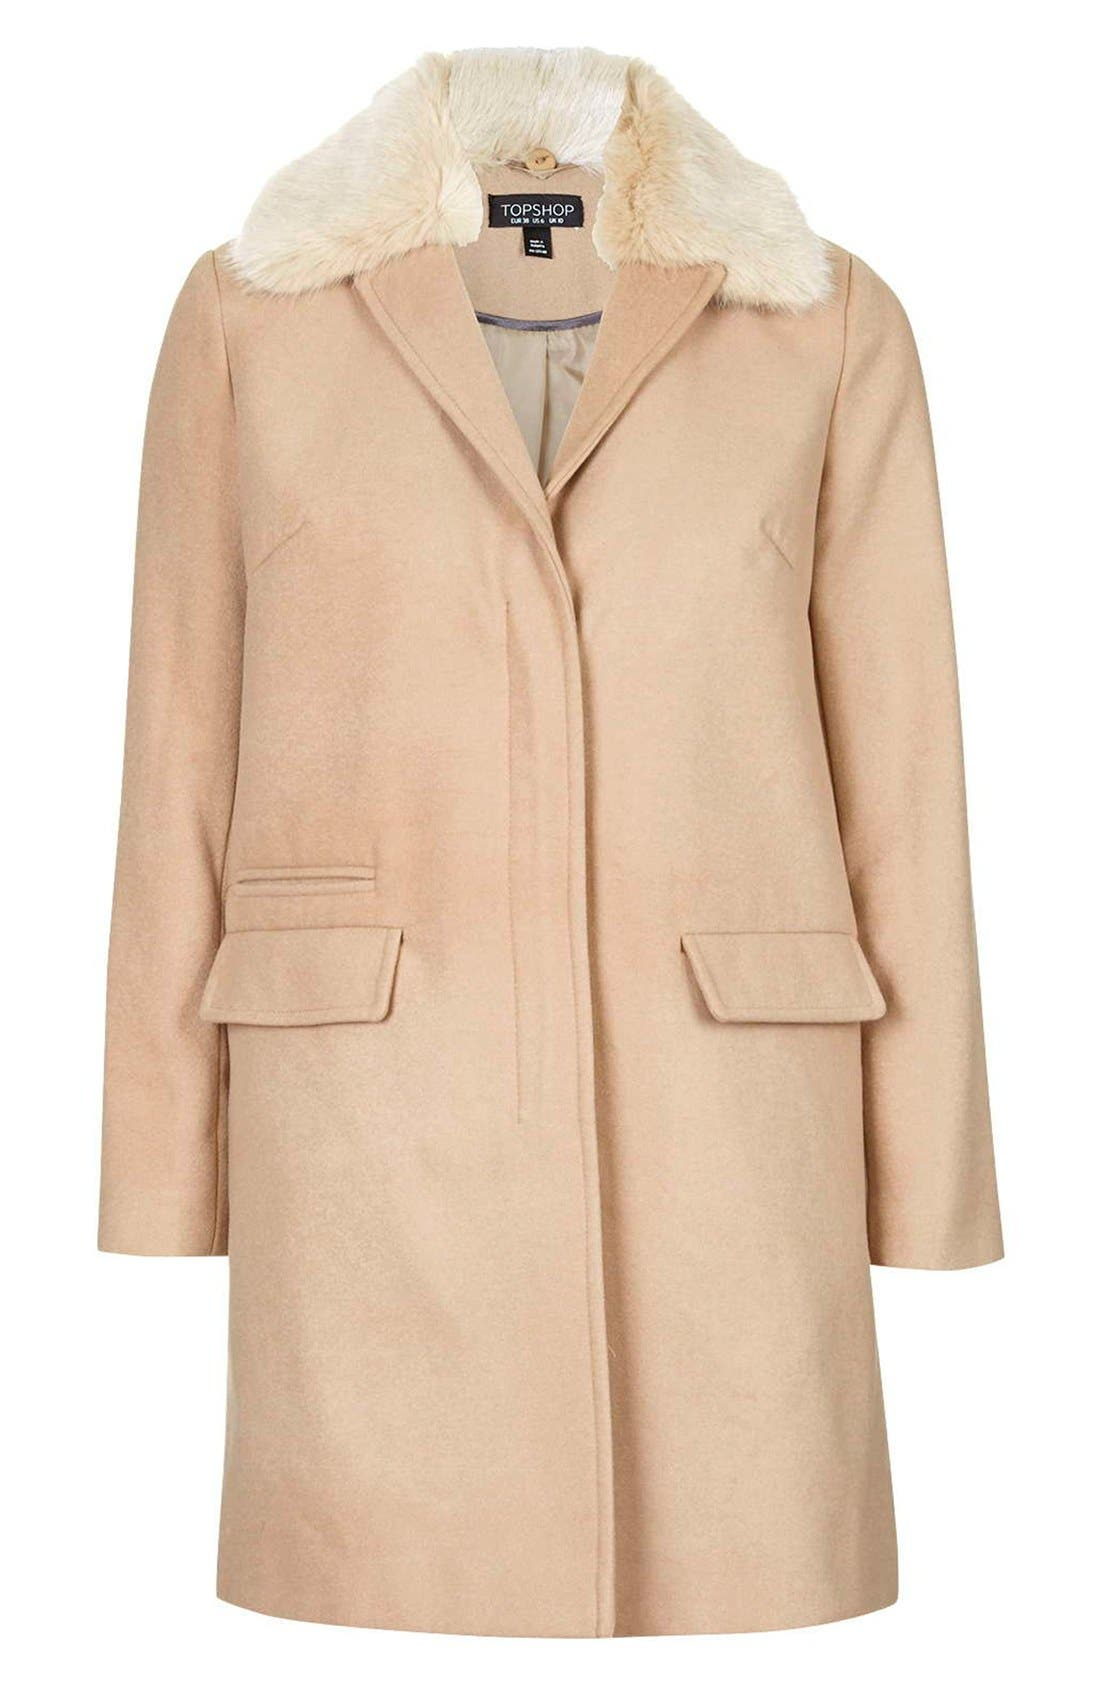 'Mia' Faux Fur Collar Slim Fit Coat,                             Alternate thumbnail 4, color,                             Camel